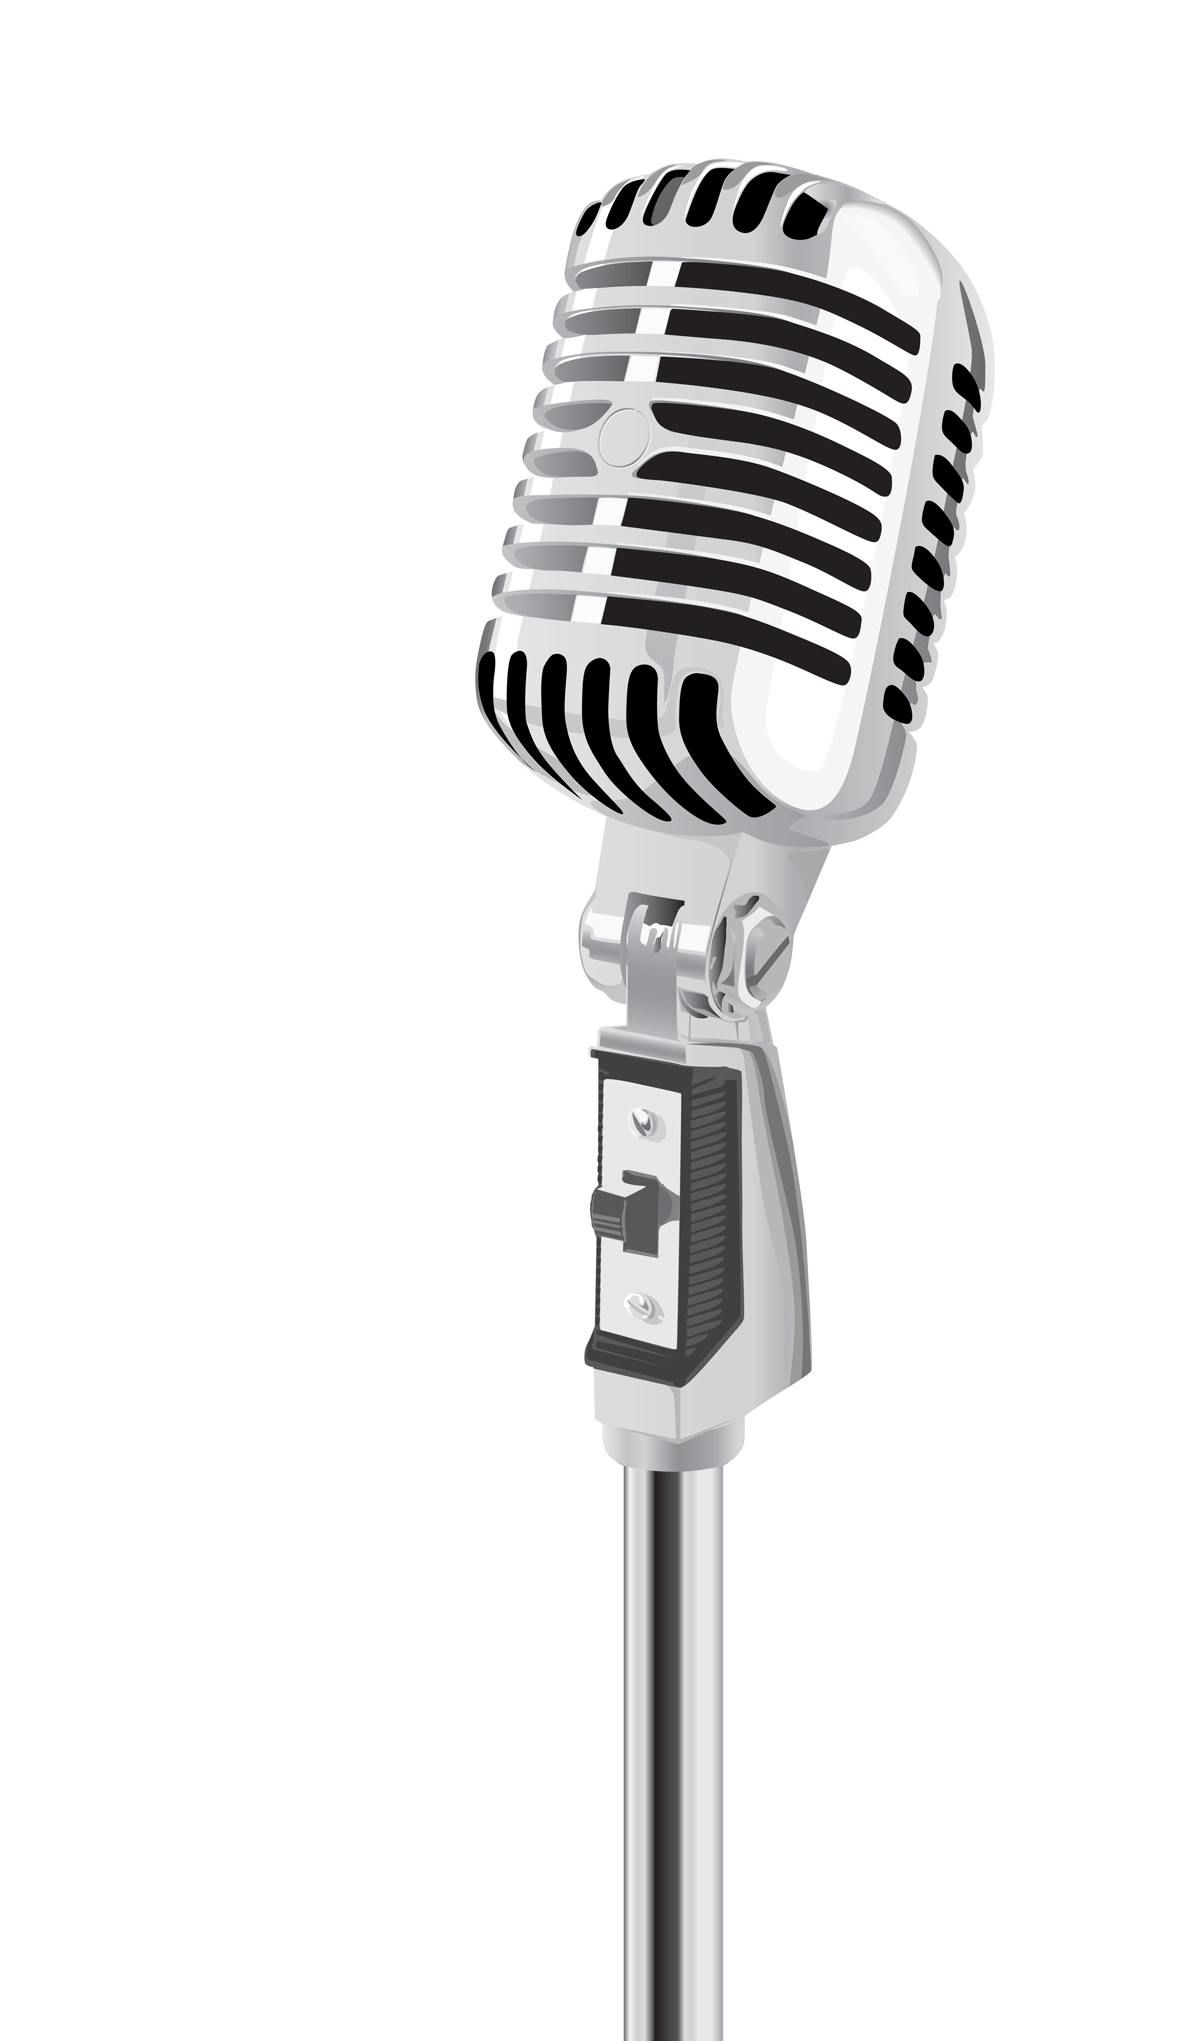 microphone clipart black and white clipart panda free microphone clip art drawing microphone clip art free images